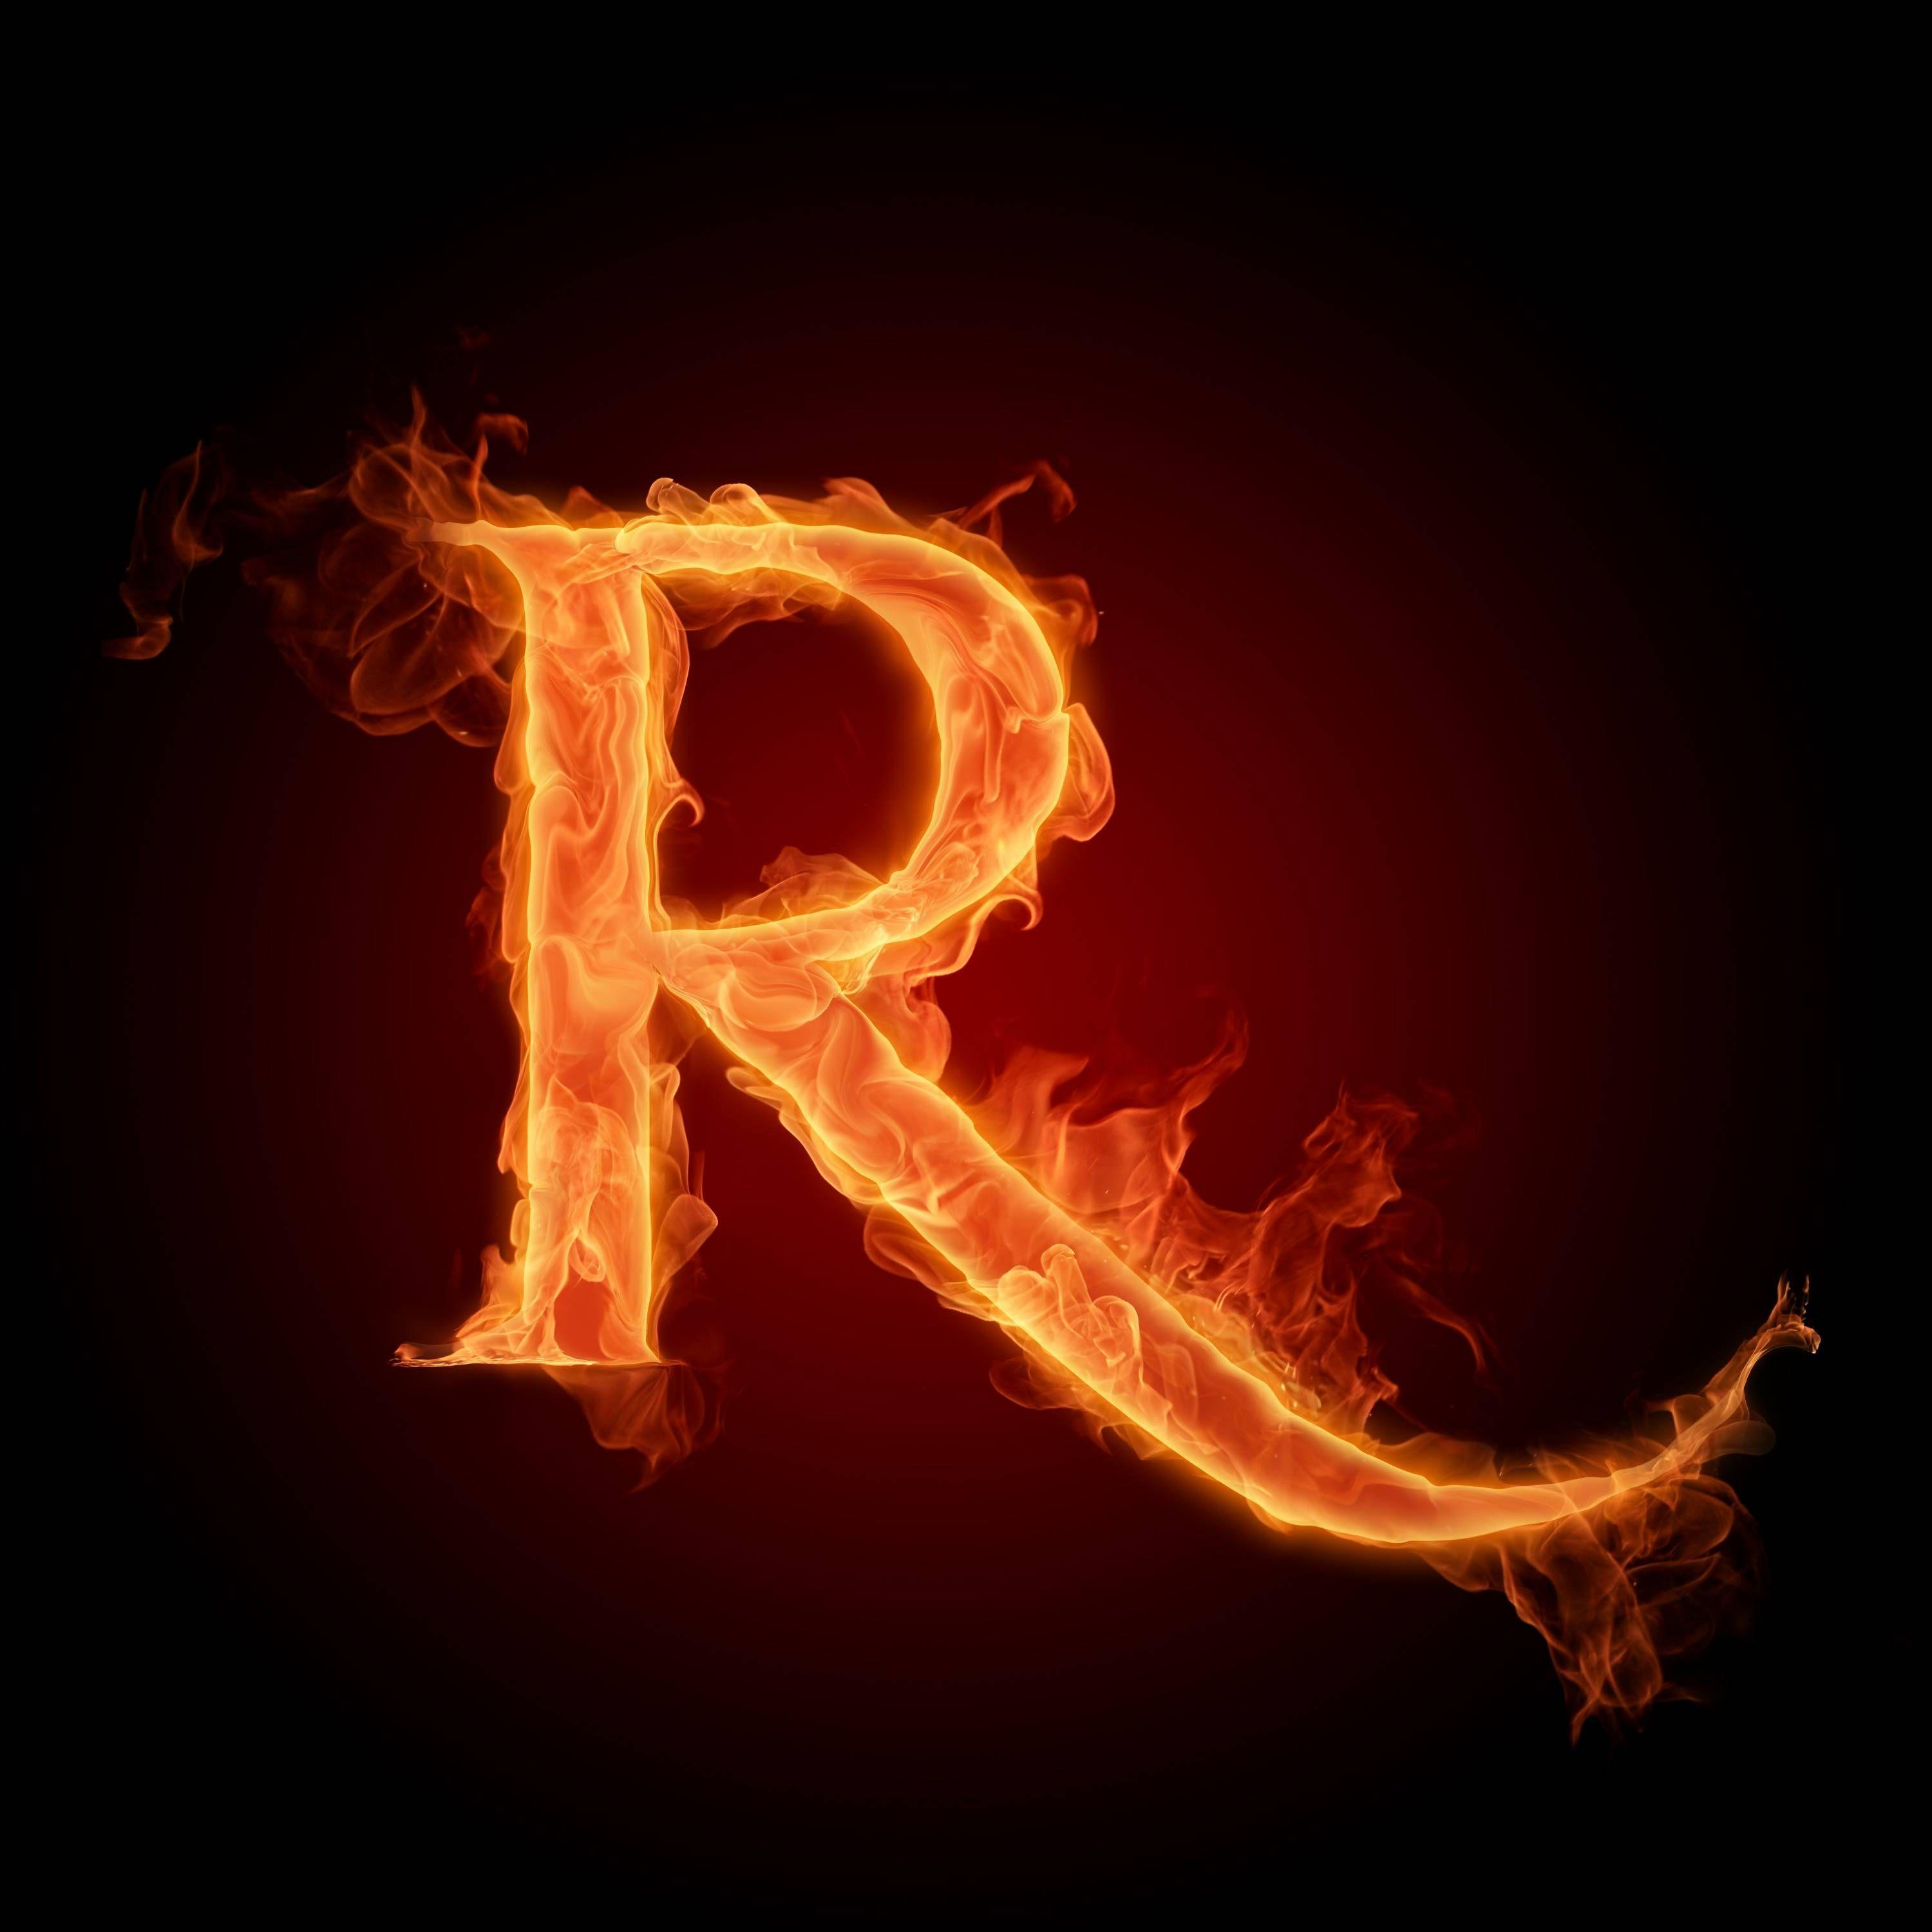 Letter R Wallpapers For Mobile Wallpaper Cave